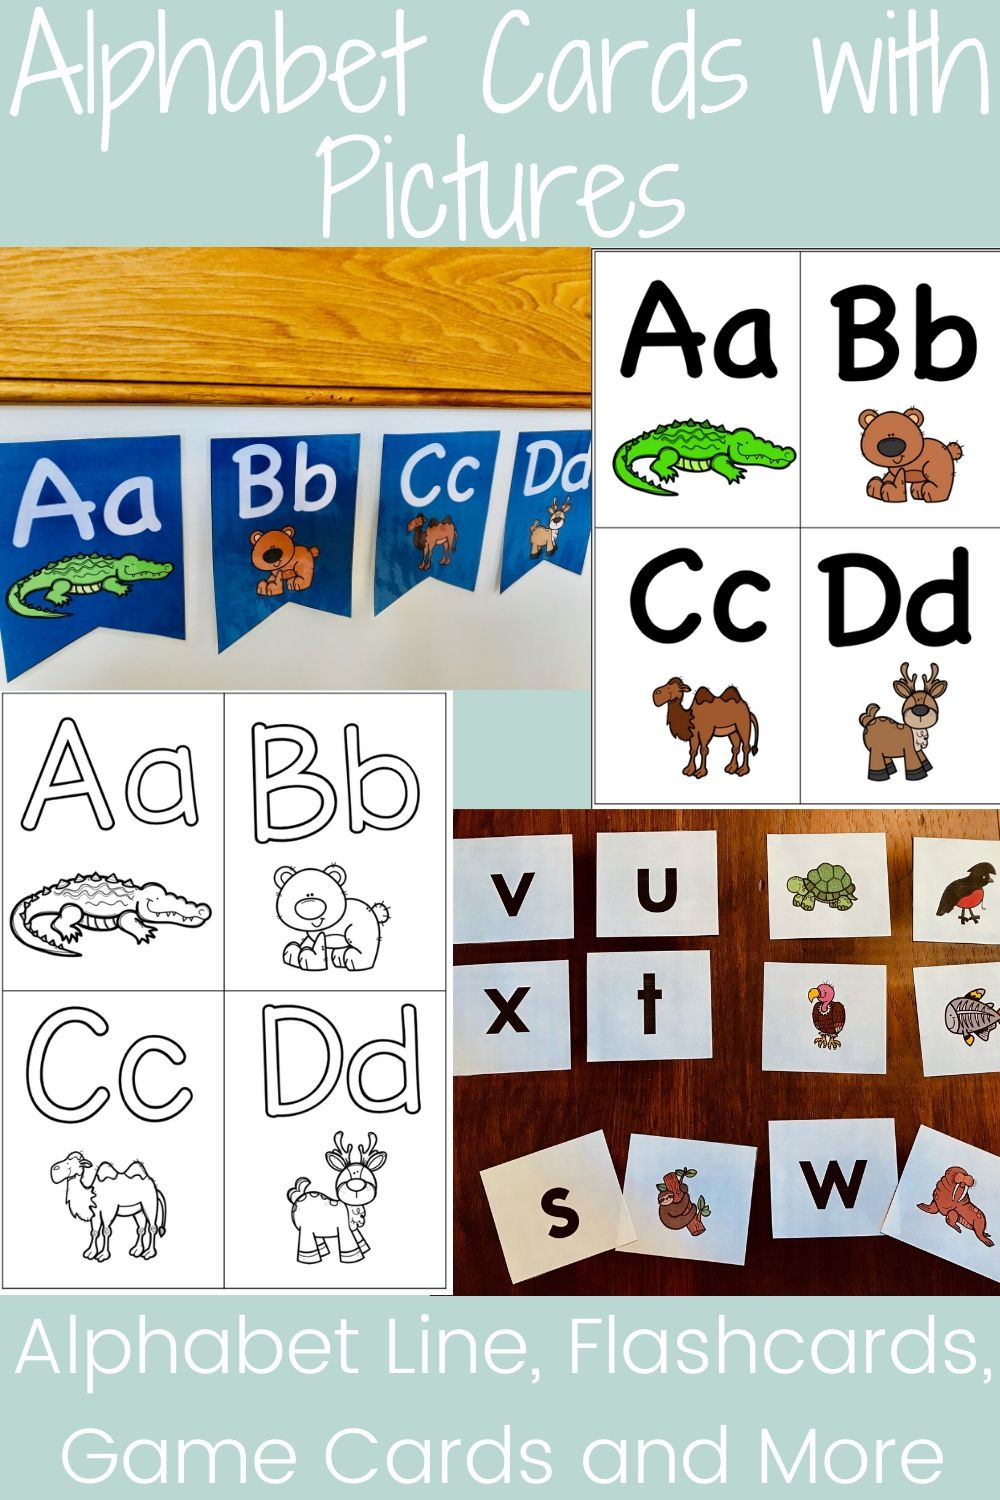 Alphabet Cards with Pictures : Alphabet Line / Flashcards / Game Cards and More